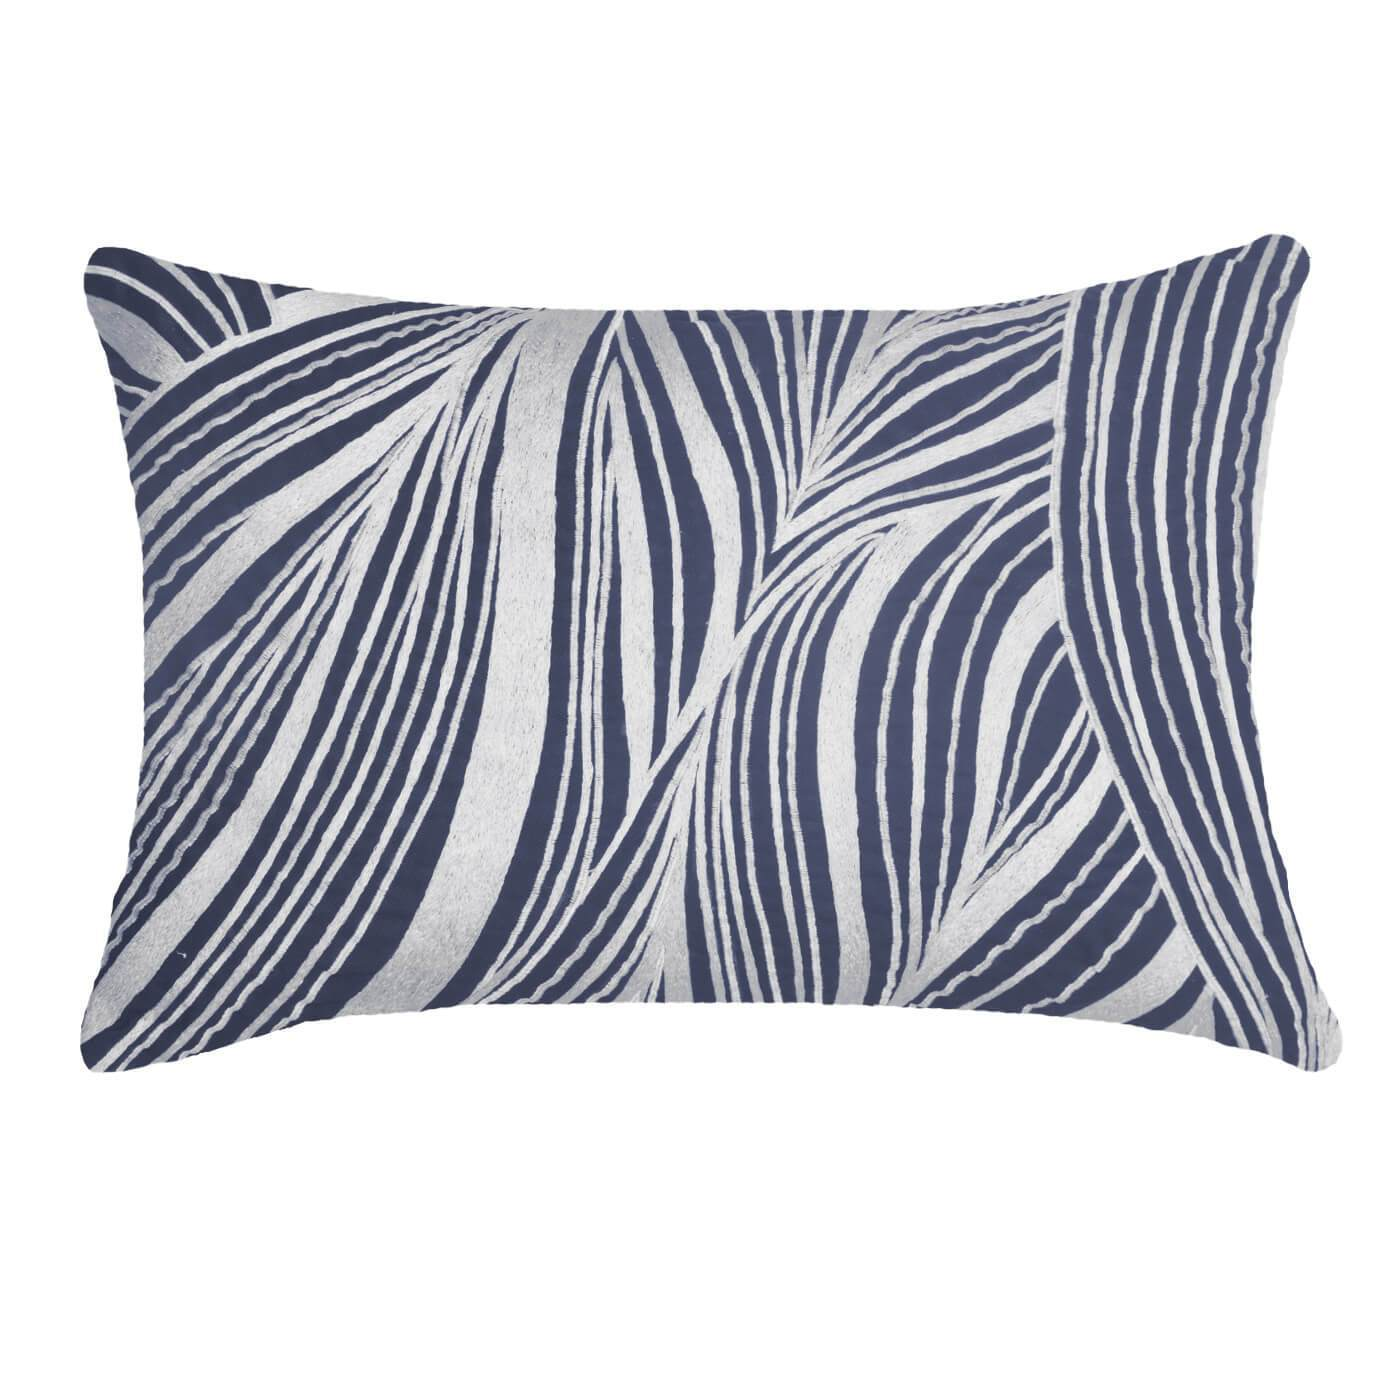 "Bandhini Homewear Design Lumber Cushion Wind  - Feather Insert / Exotic Dark / 14"" x 21"" Rake Wave Navy Lumber Cushion 35 x 53 cm"